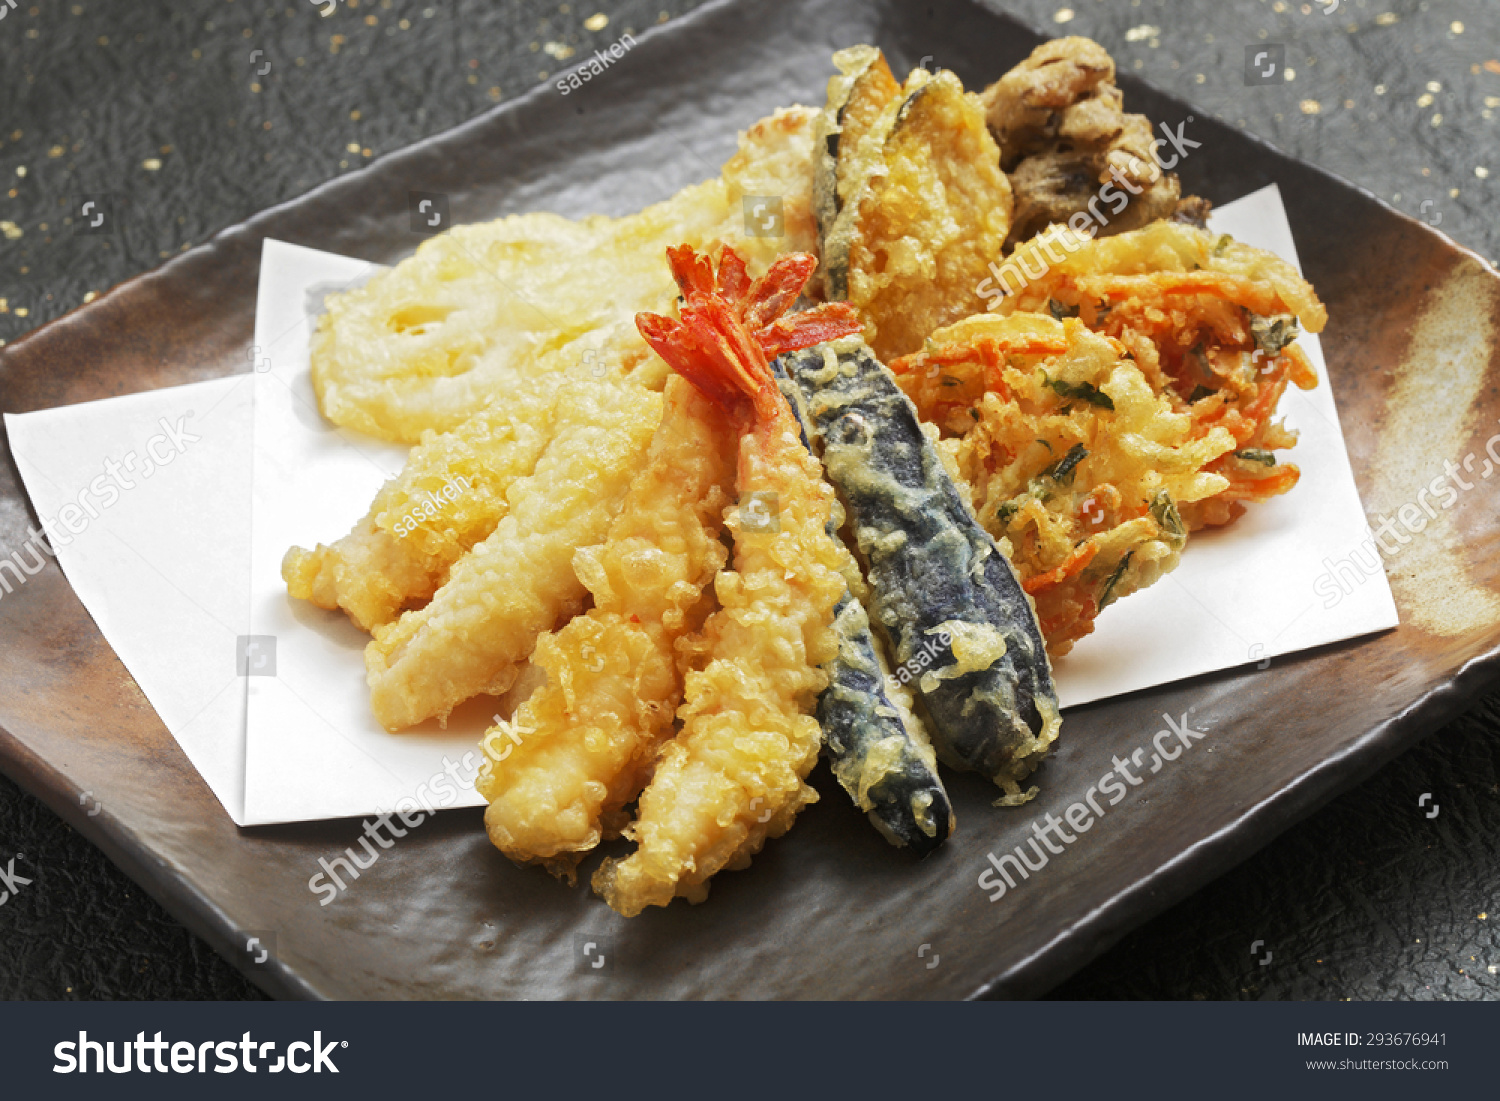 Deep fried fish vegetables light batter stock photo for Deep fry fish batter